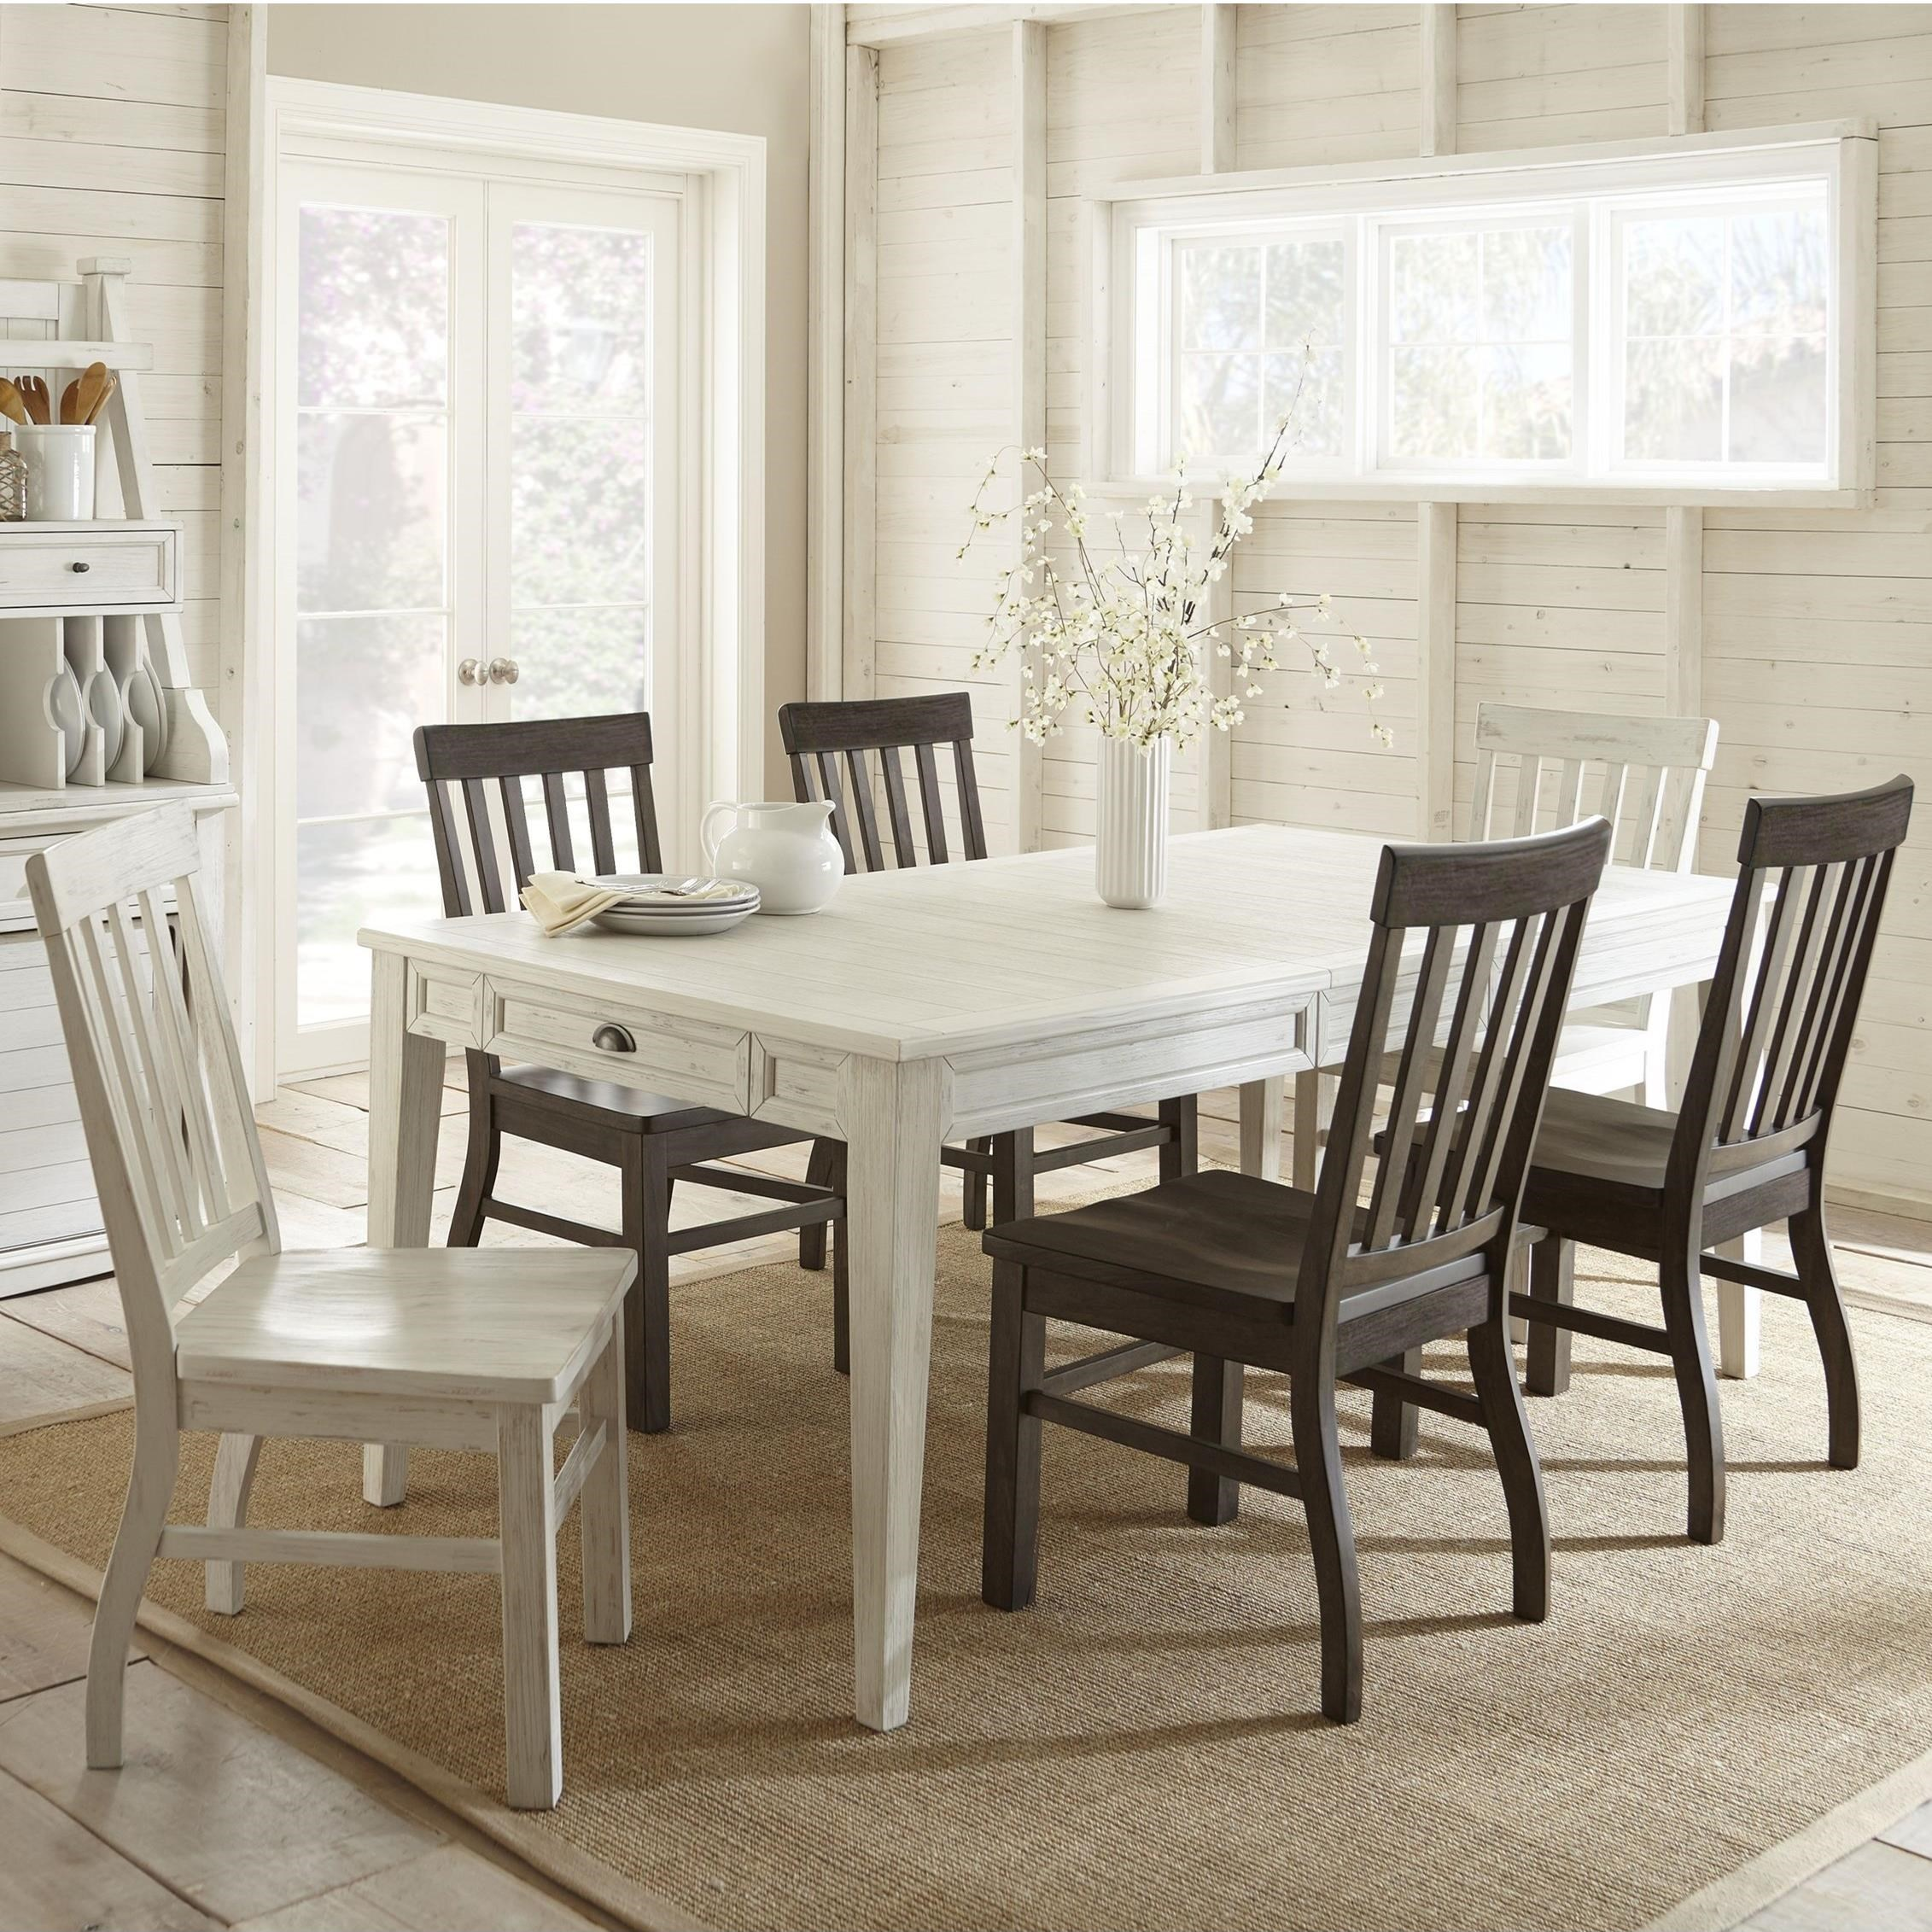 Cayla 7 Piece Dining Set by Steve Silver at Walker's Furniture